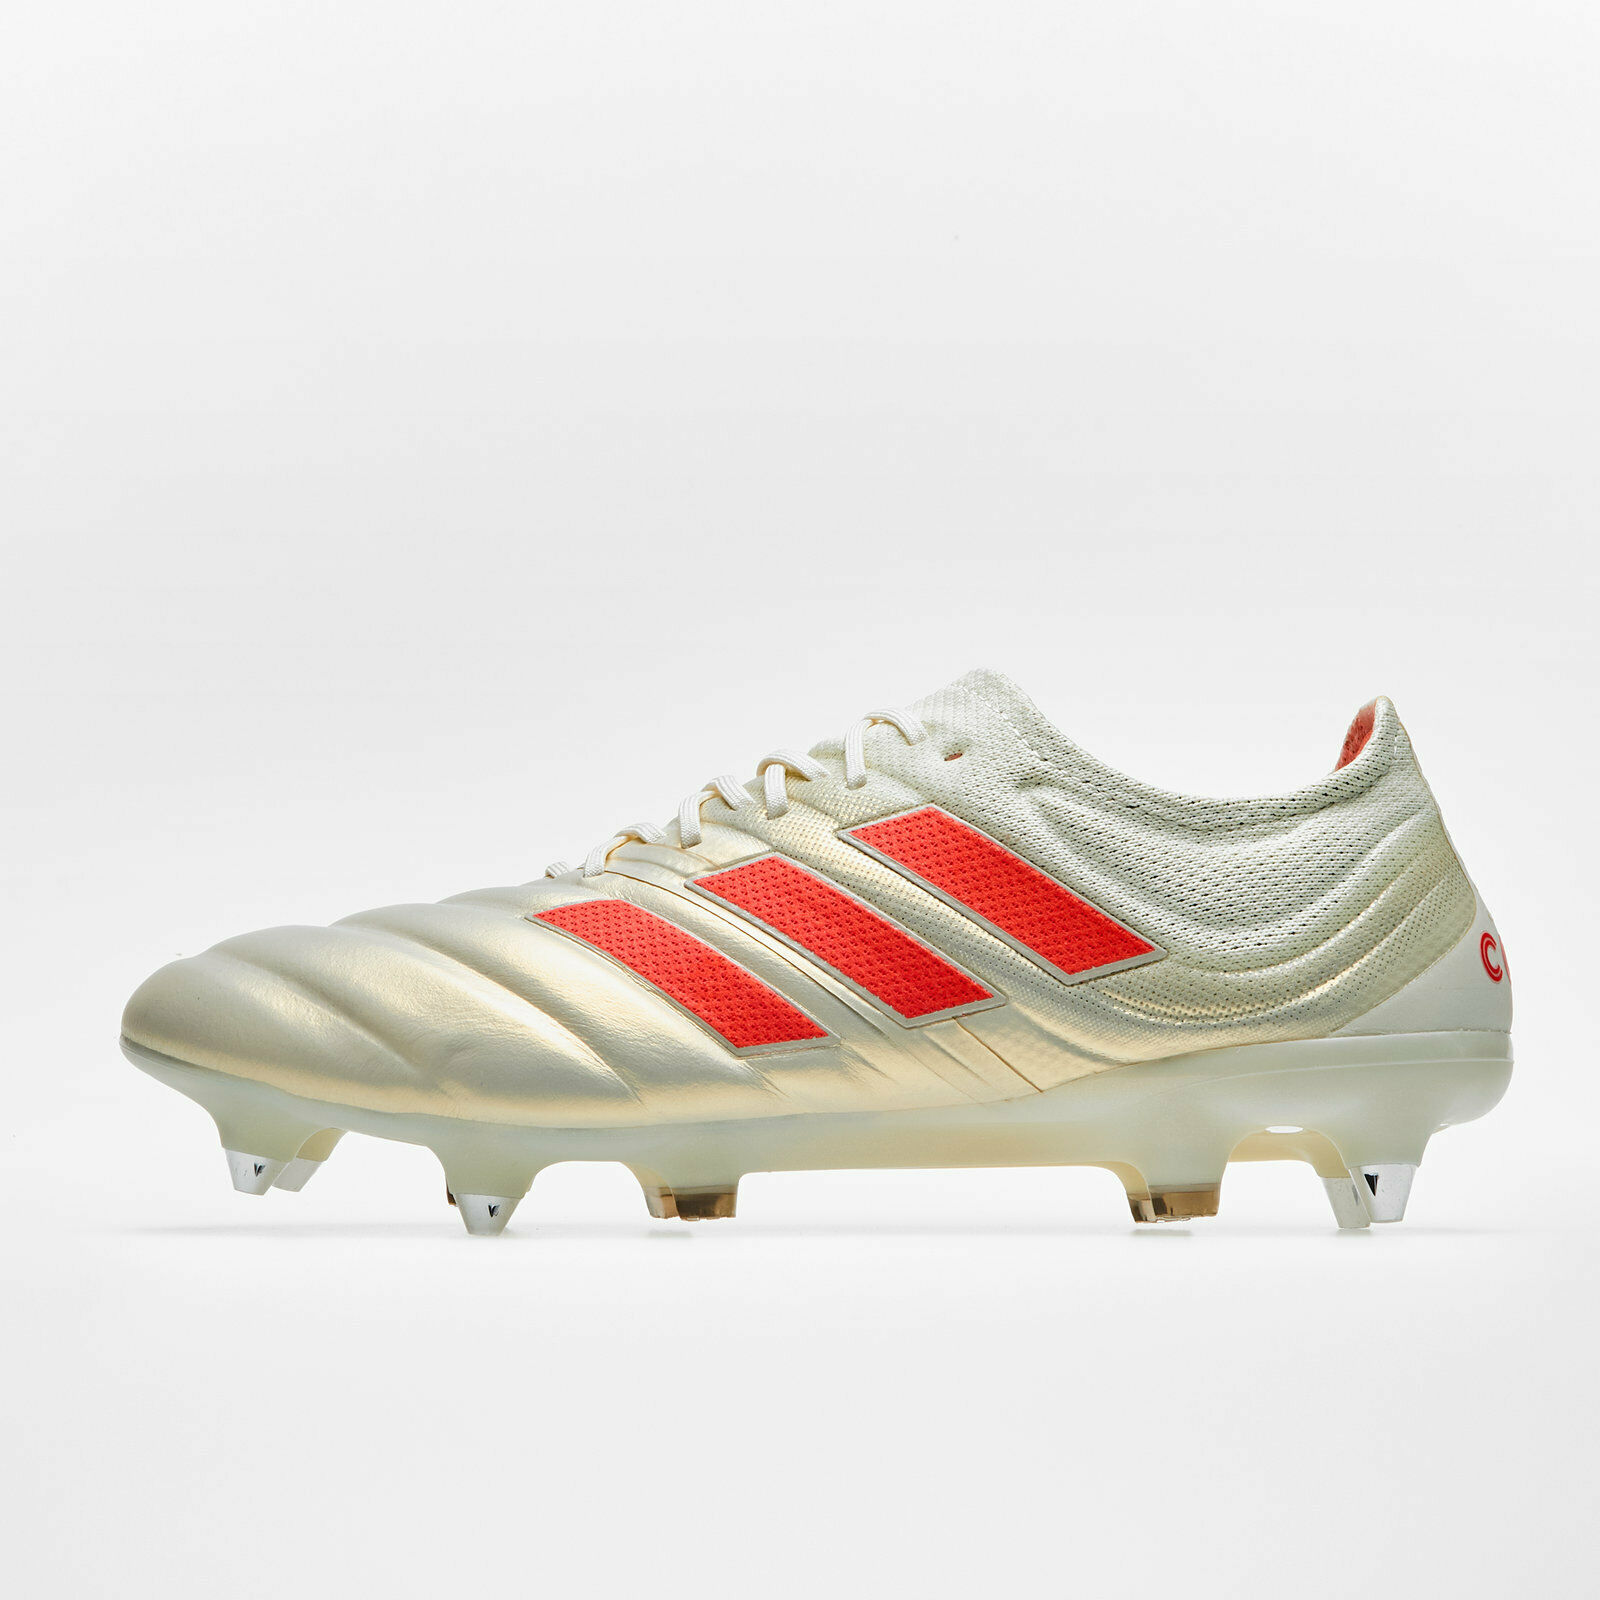 e25e40012b2 Adidas Mens Copa 19.1 Football Studs Trainers Sports shoes White SG Boots  ndnpfz2119-Football Trainers